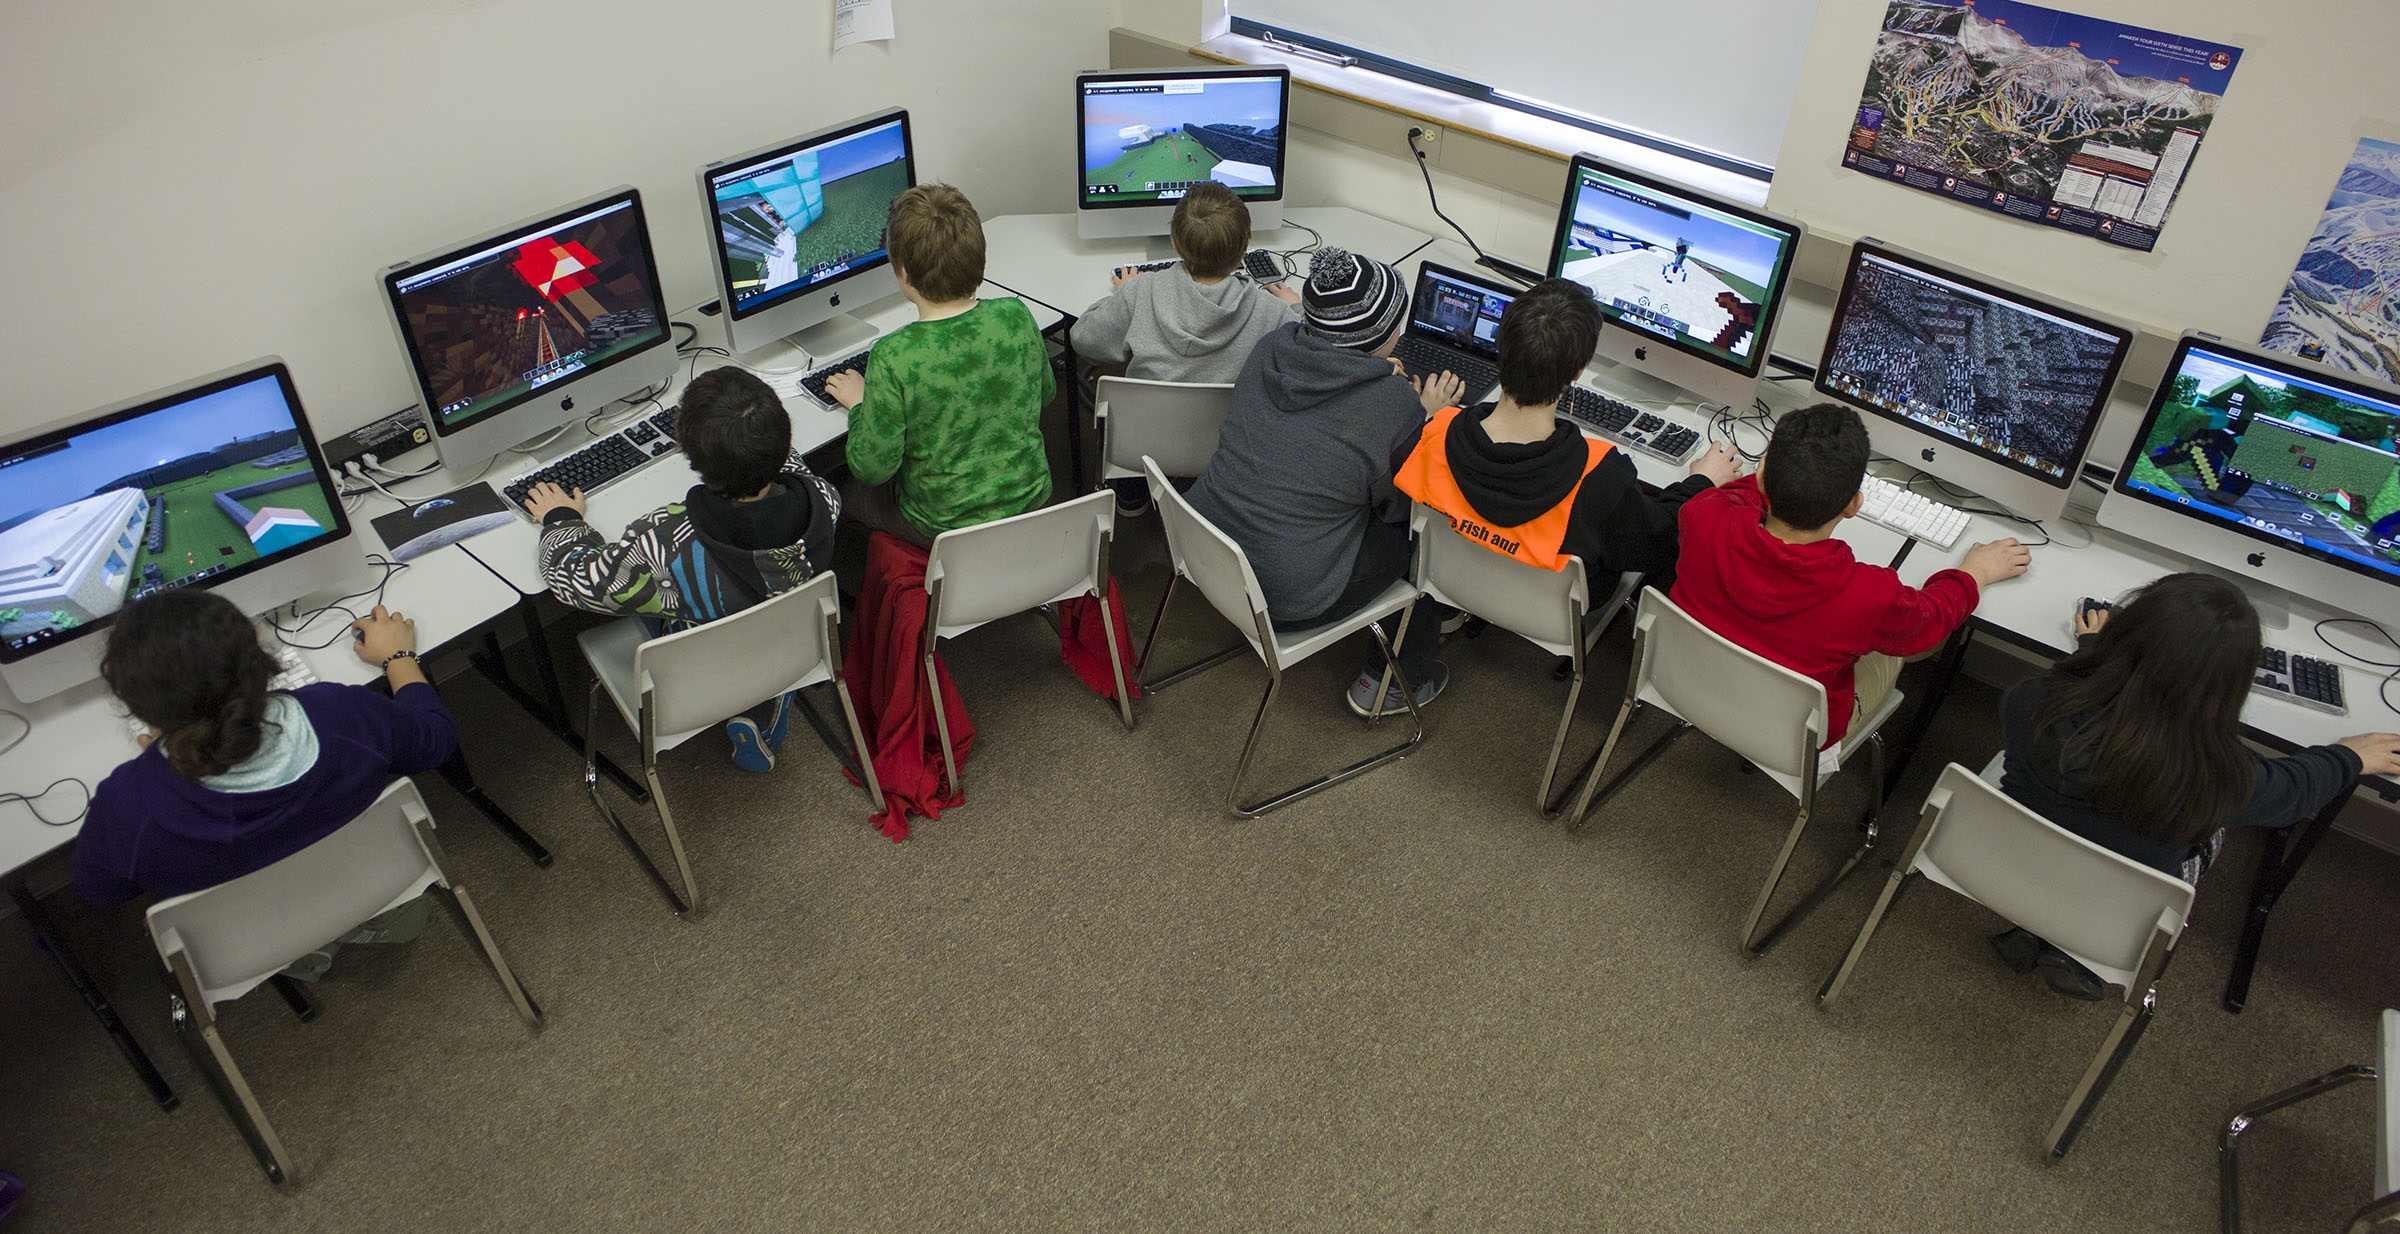 Can students learn the Common Core through gaming? - The Hechinger Report